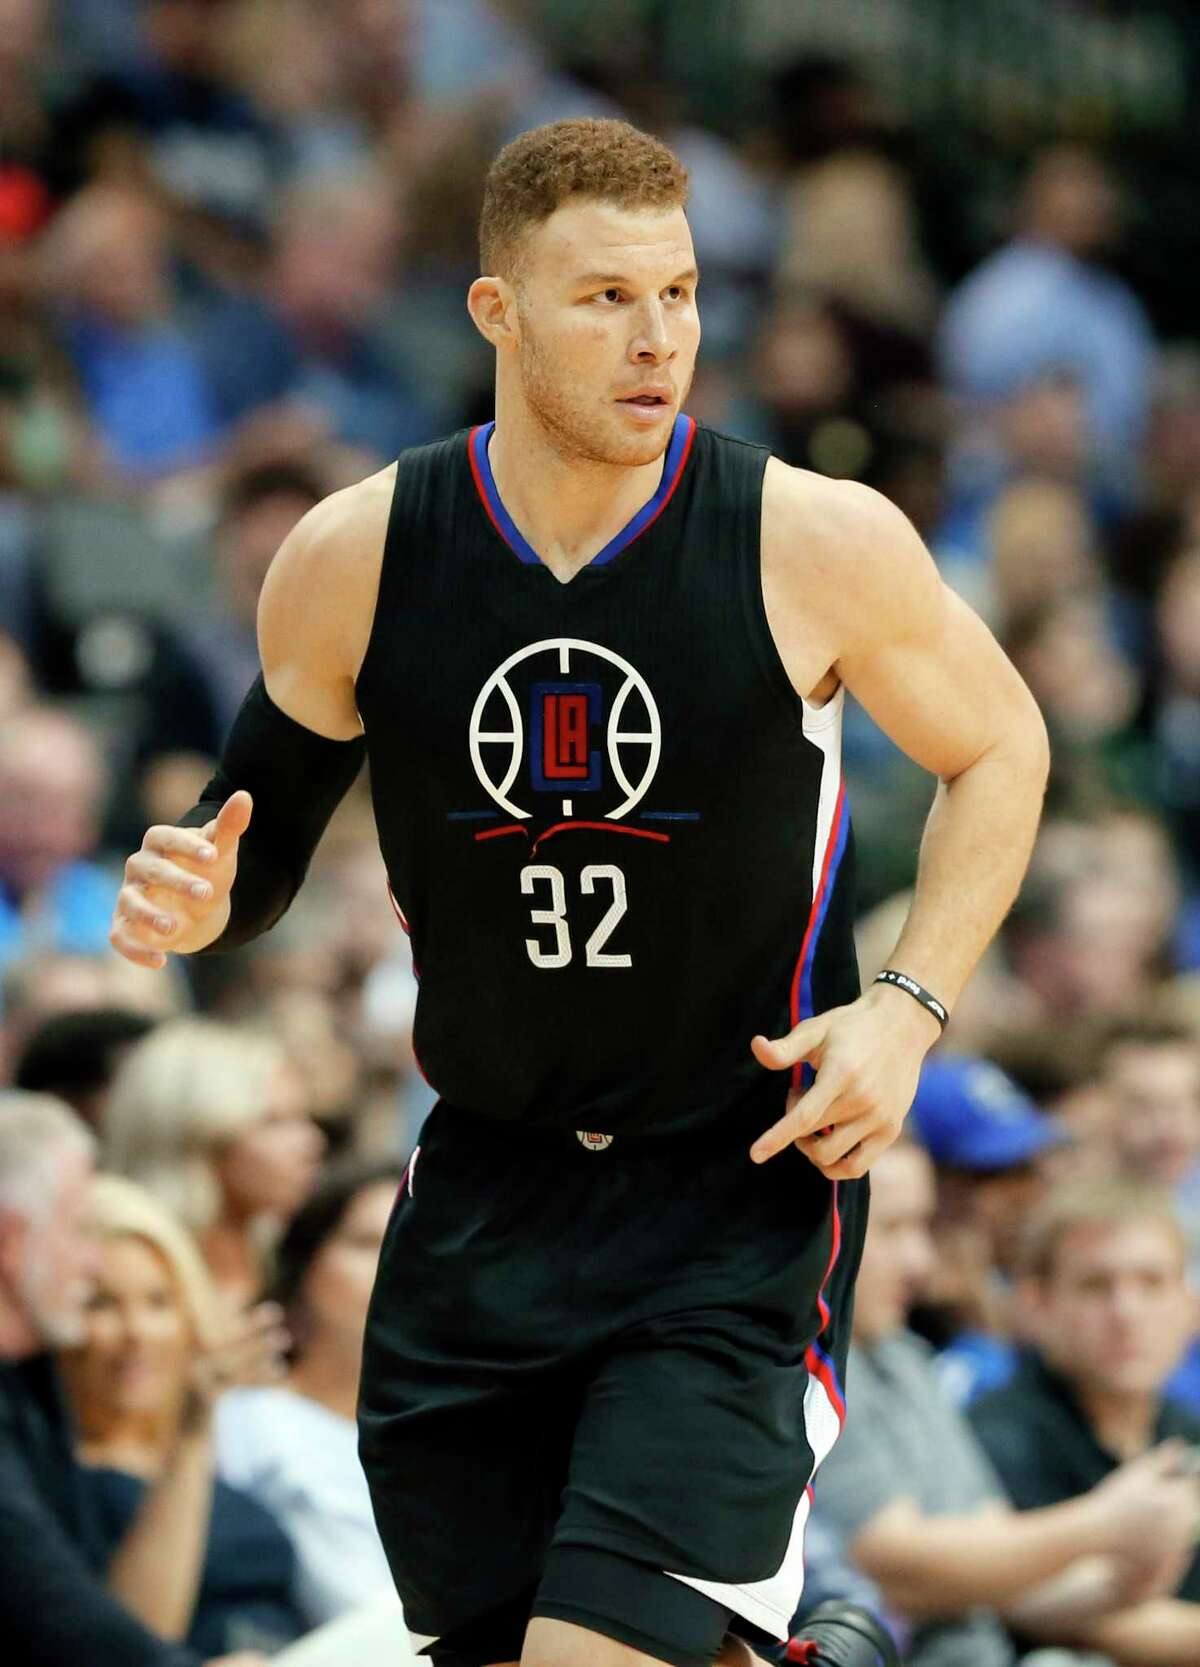 Los Angeles Clippers' Blake Griffin (32) jogs up court during an NBA basketball game against the Dallas Mavericks in Dallas, Thursday, March 23, 2017. (AP Photo/Tony Gutierrez)